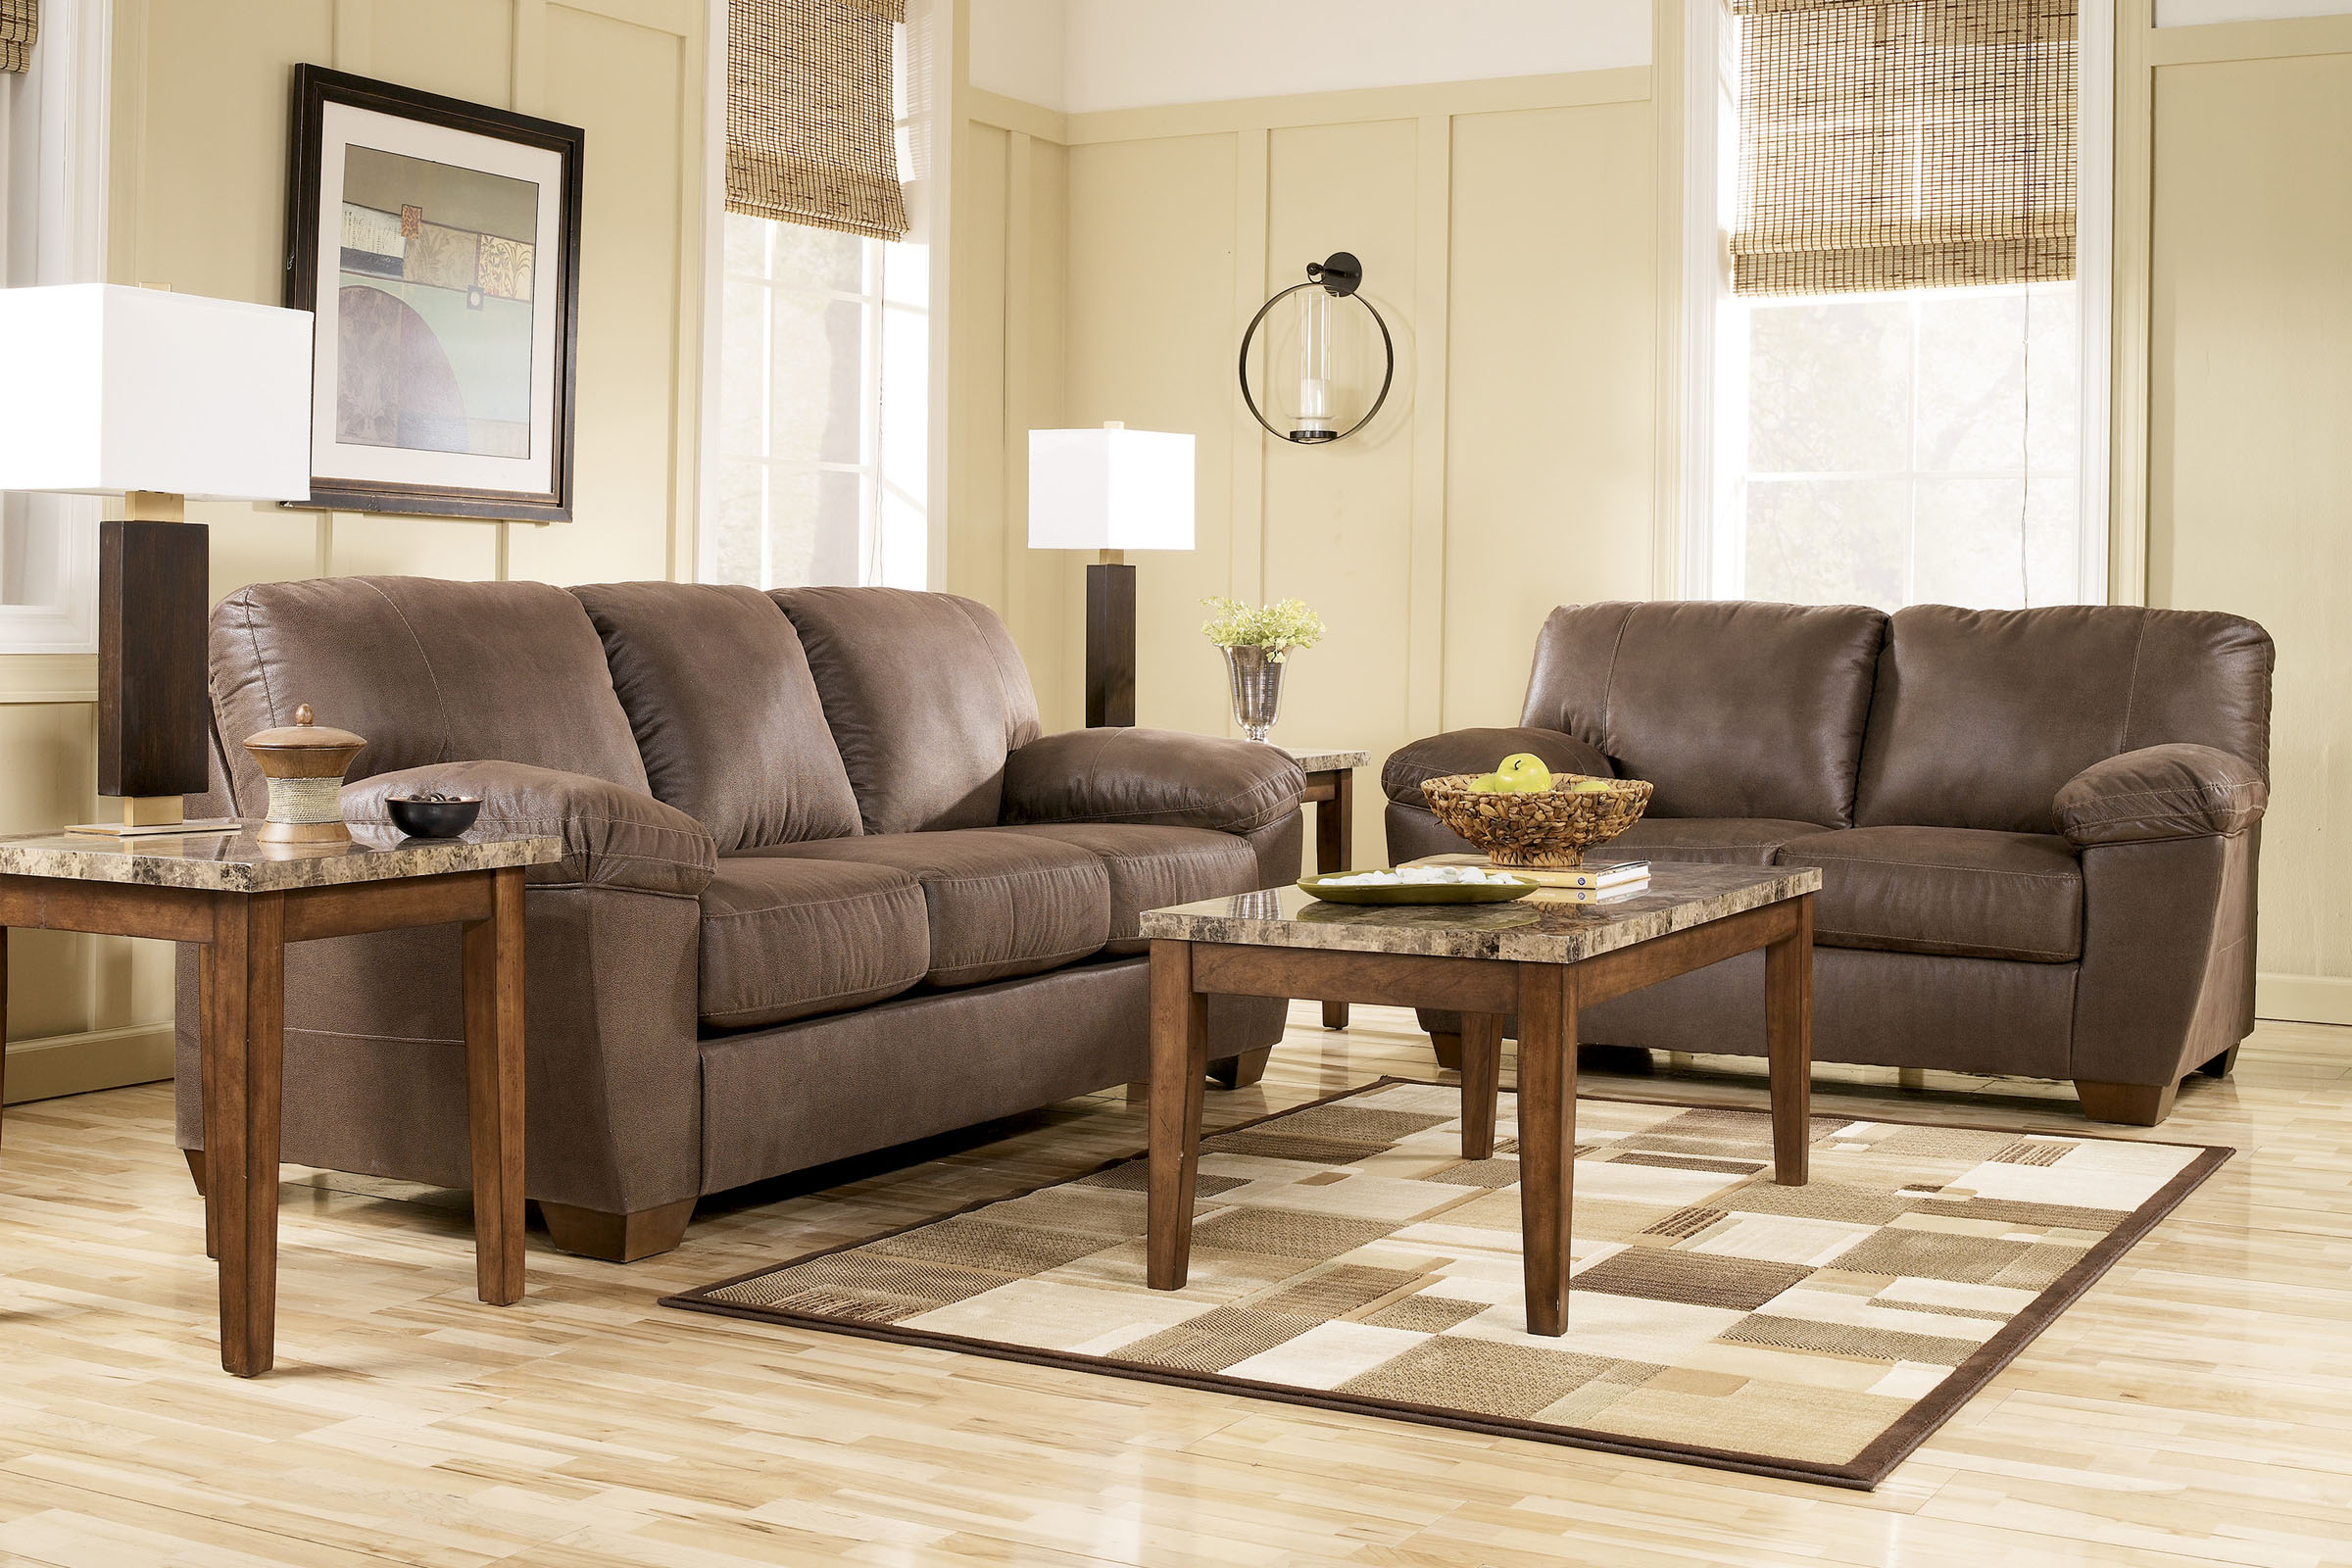 Amazon by Ashley® Living Room Collection